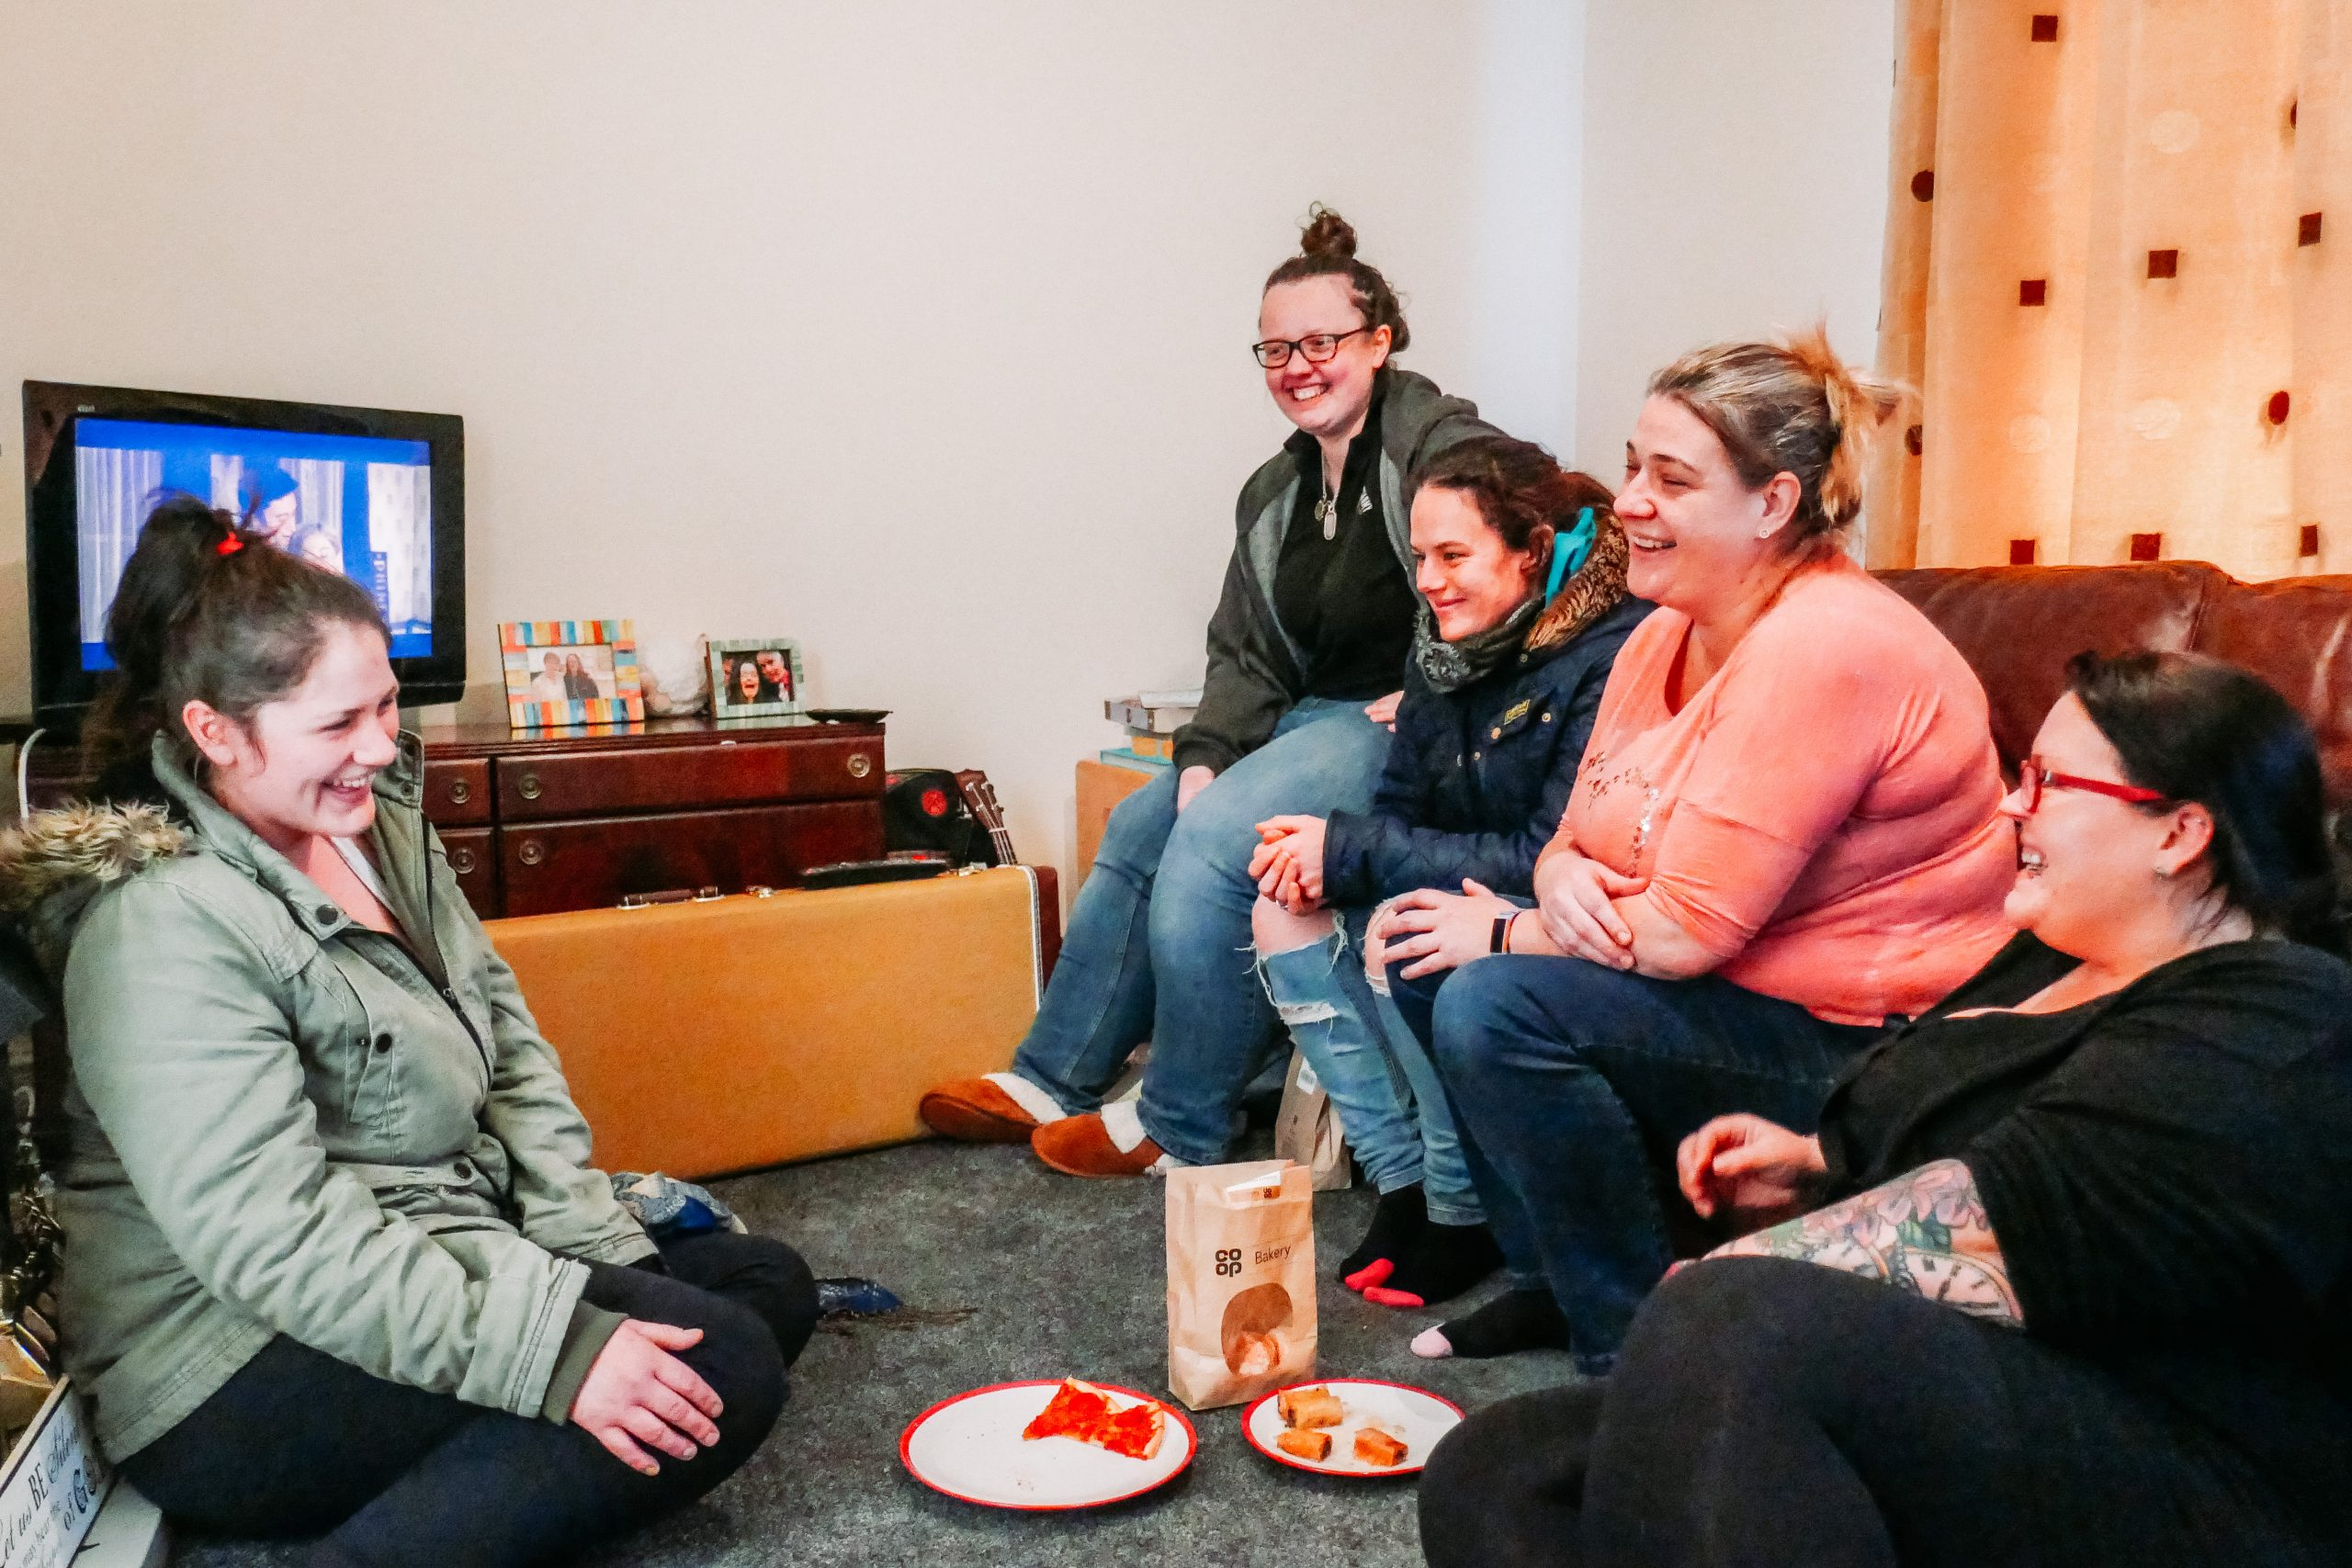 Amy and other women in a living room laughing and eating biscuits